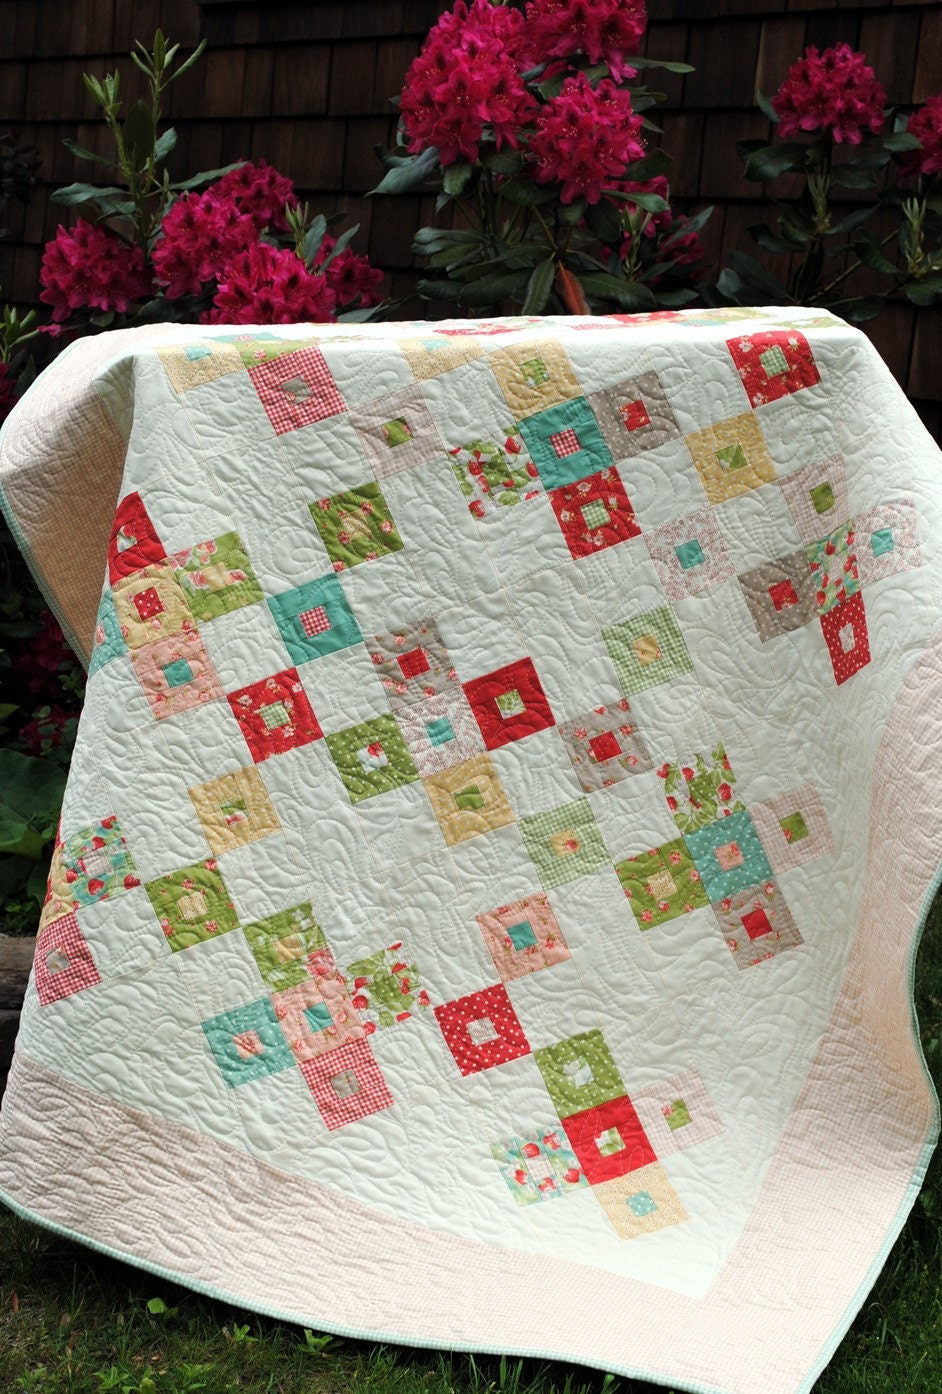 Layer Cake Quilt Design : QUILT PATTERN Layer Cake or Fat Quarters Easy 2 sizes eBay